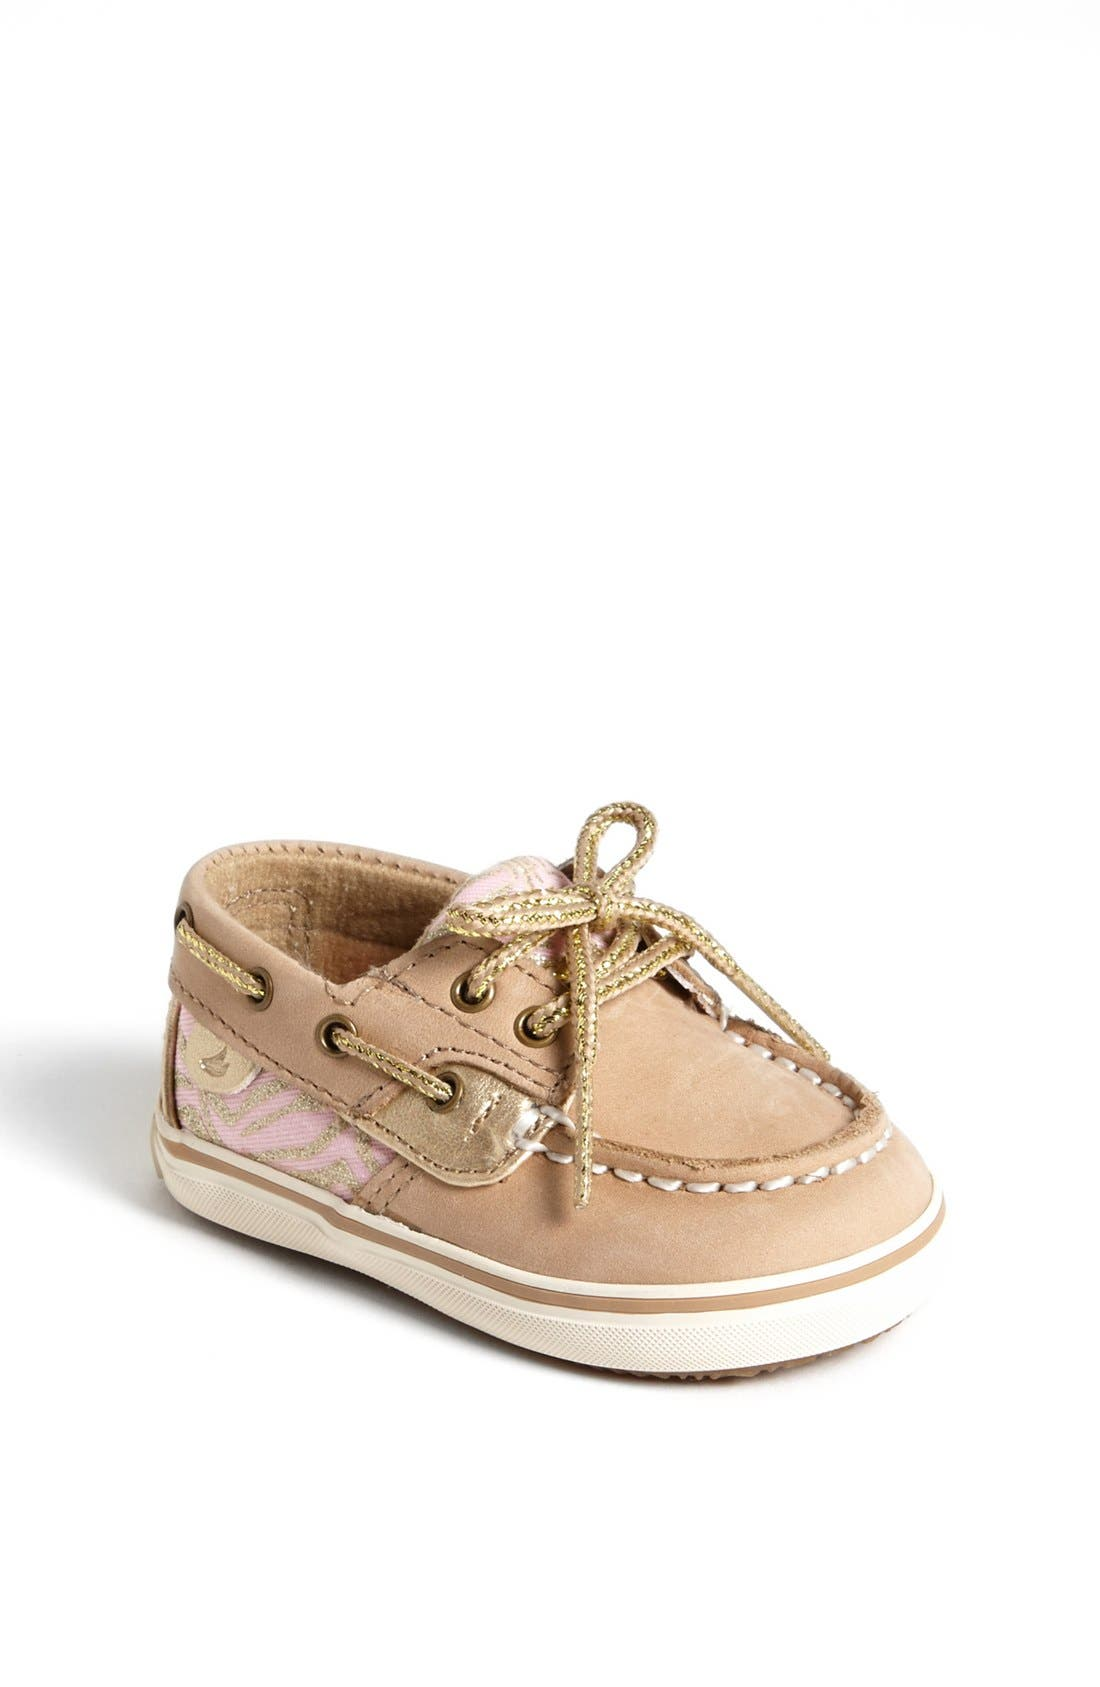 Alternate Image 1 Selected - Sperry Top-Sider® Kids 'Bluefish' Crib Shoe (Baby)